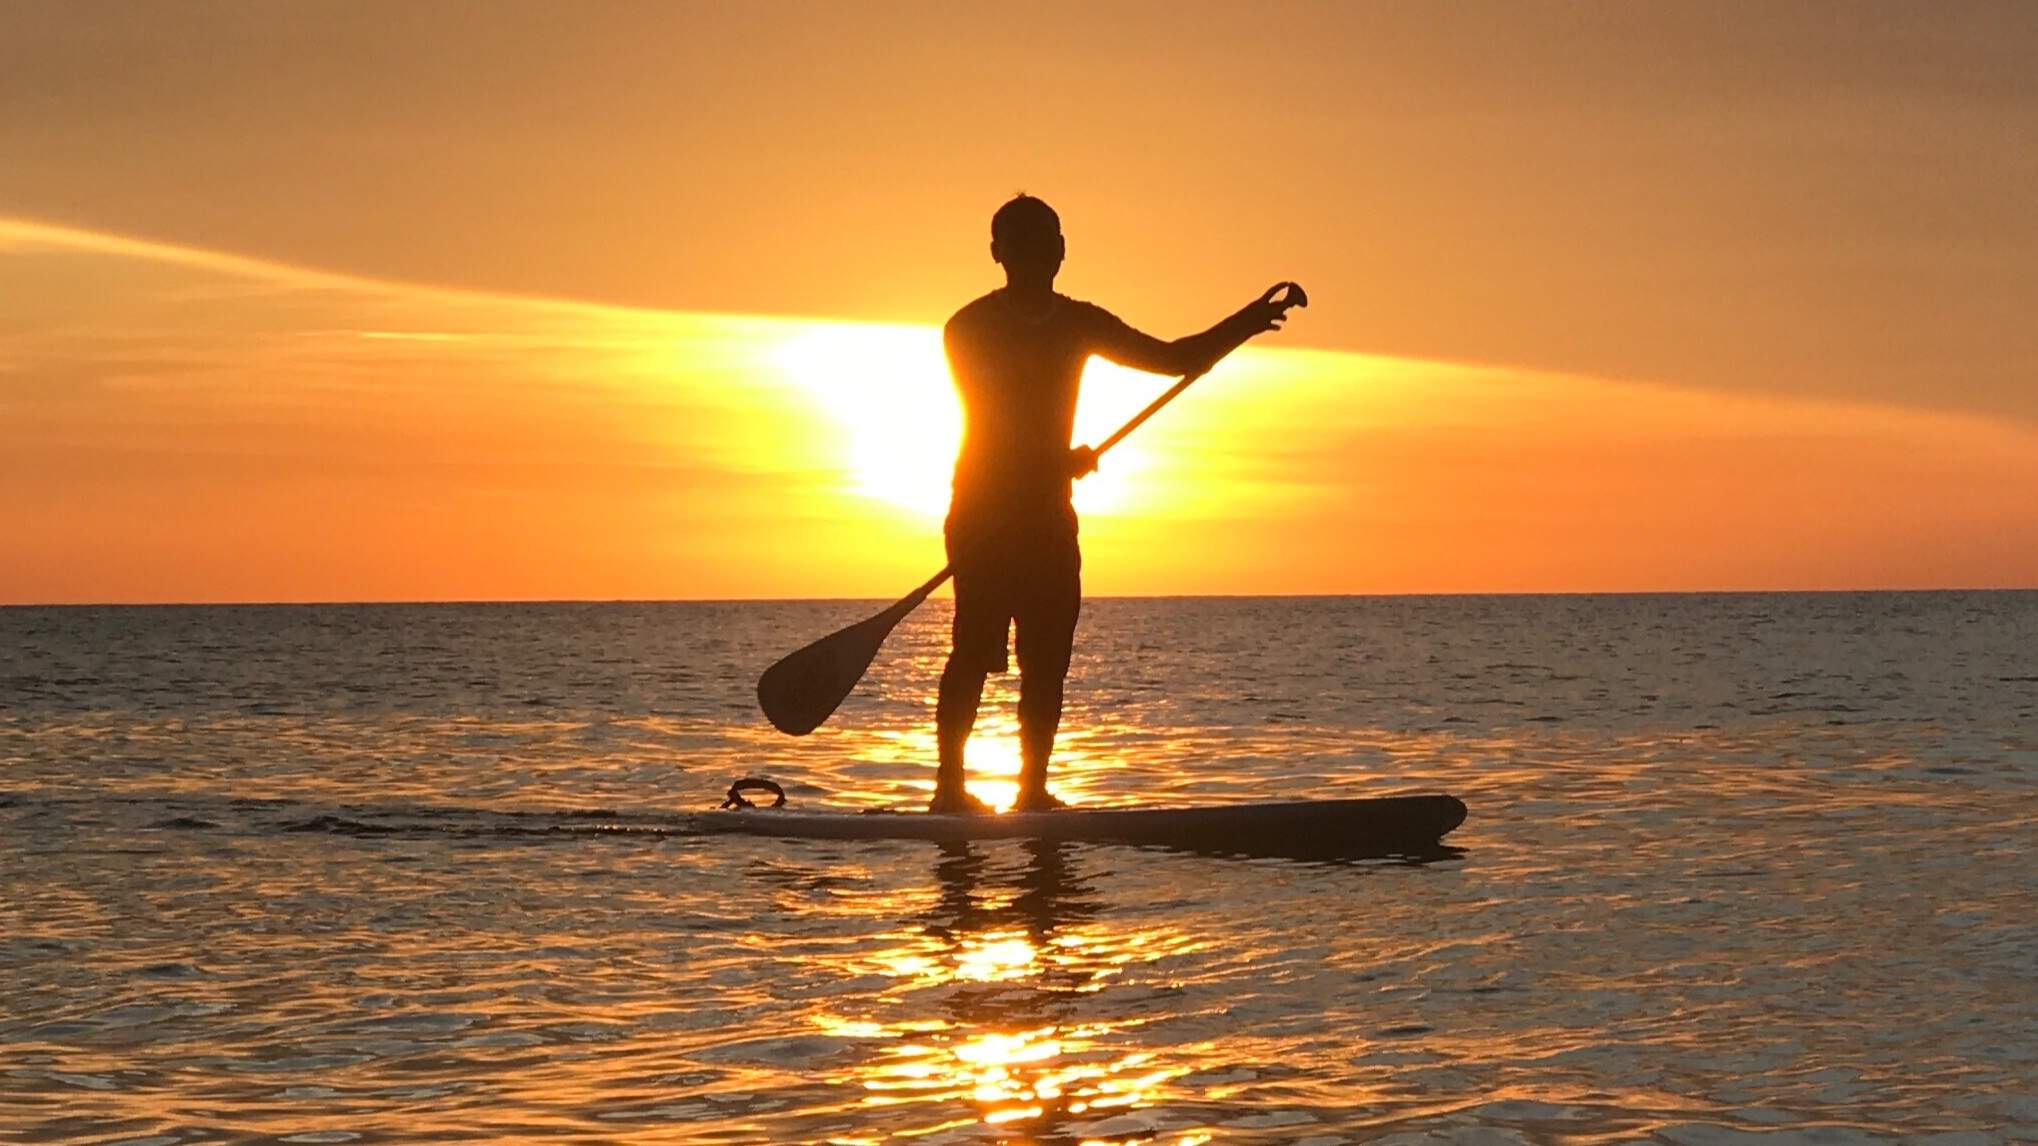 Stand up Paddle - CHOOSE CALMING WAYS TO EXPLORE NATURE